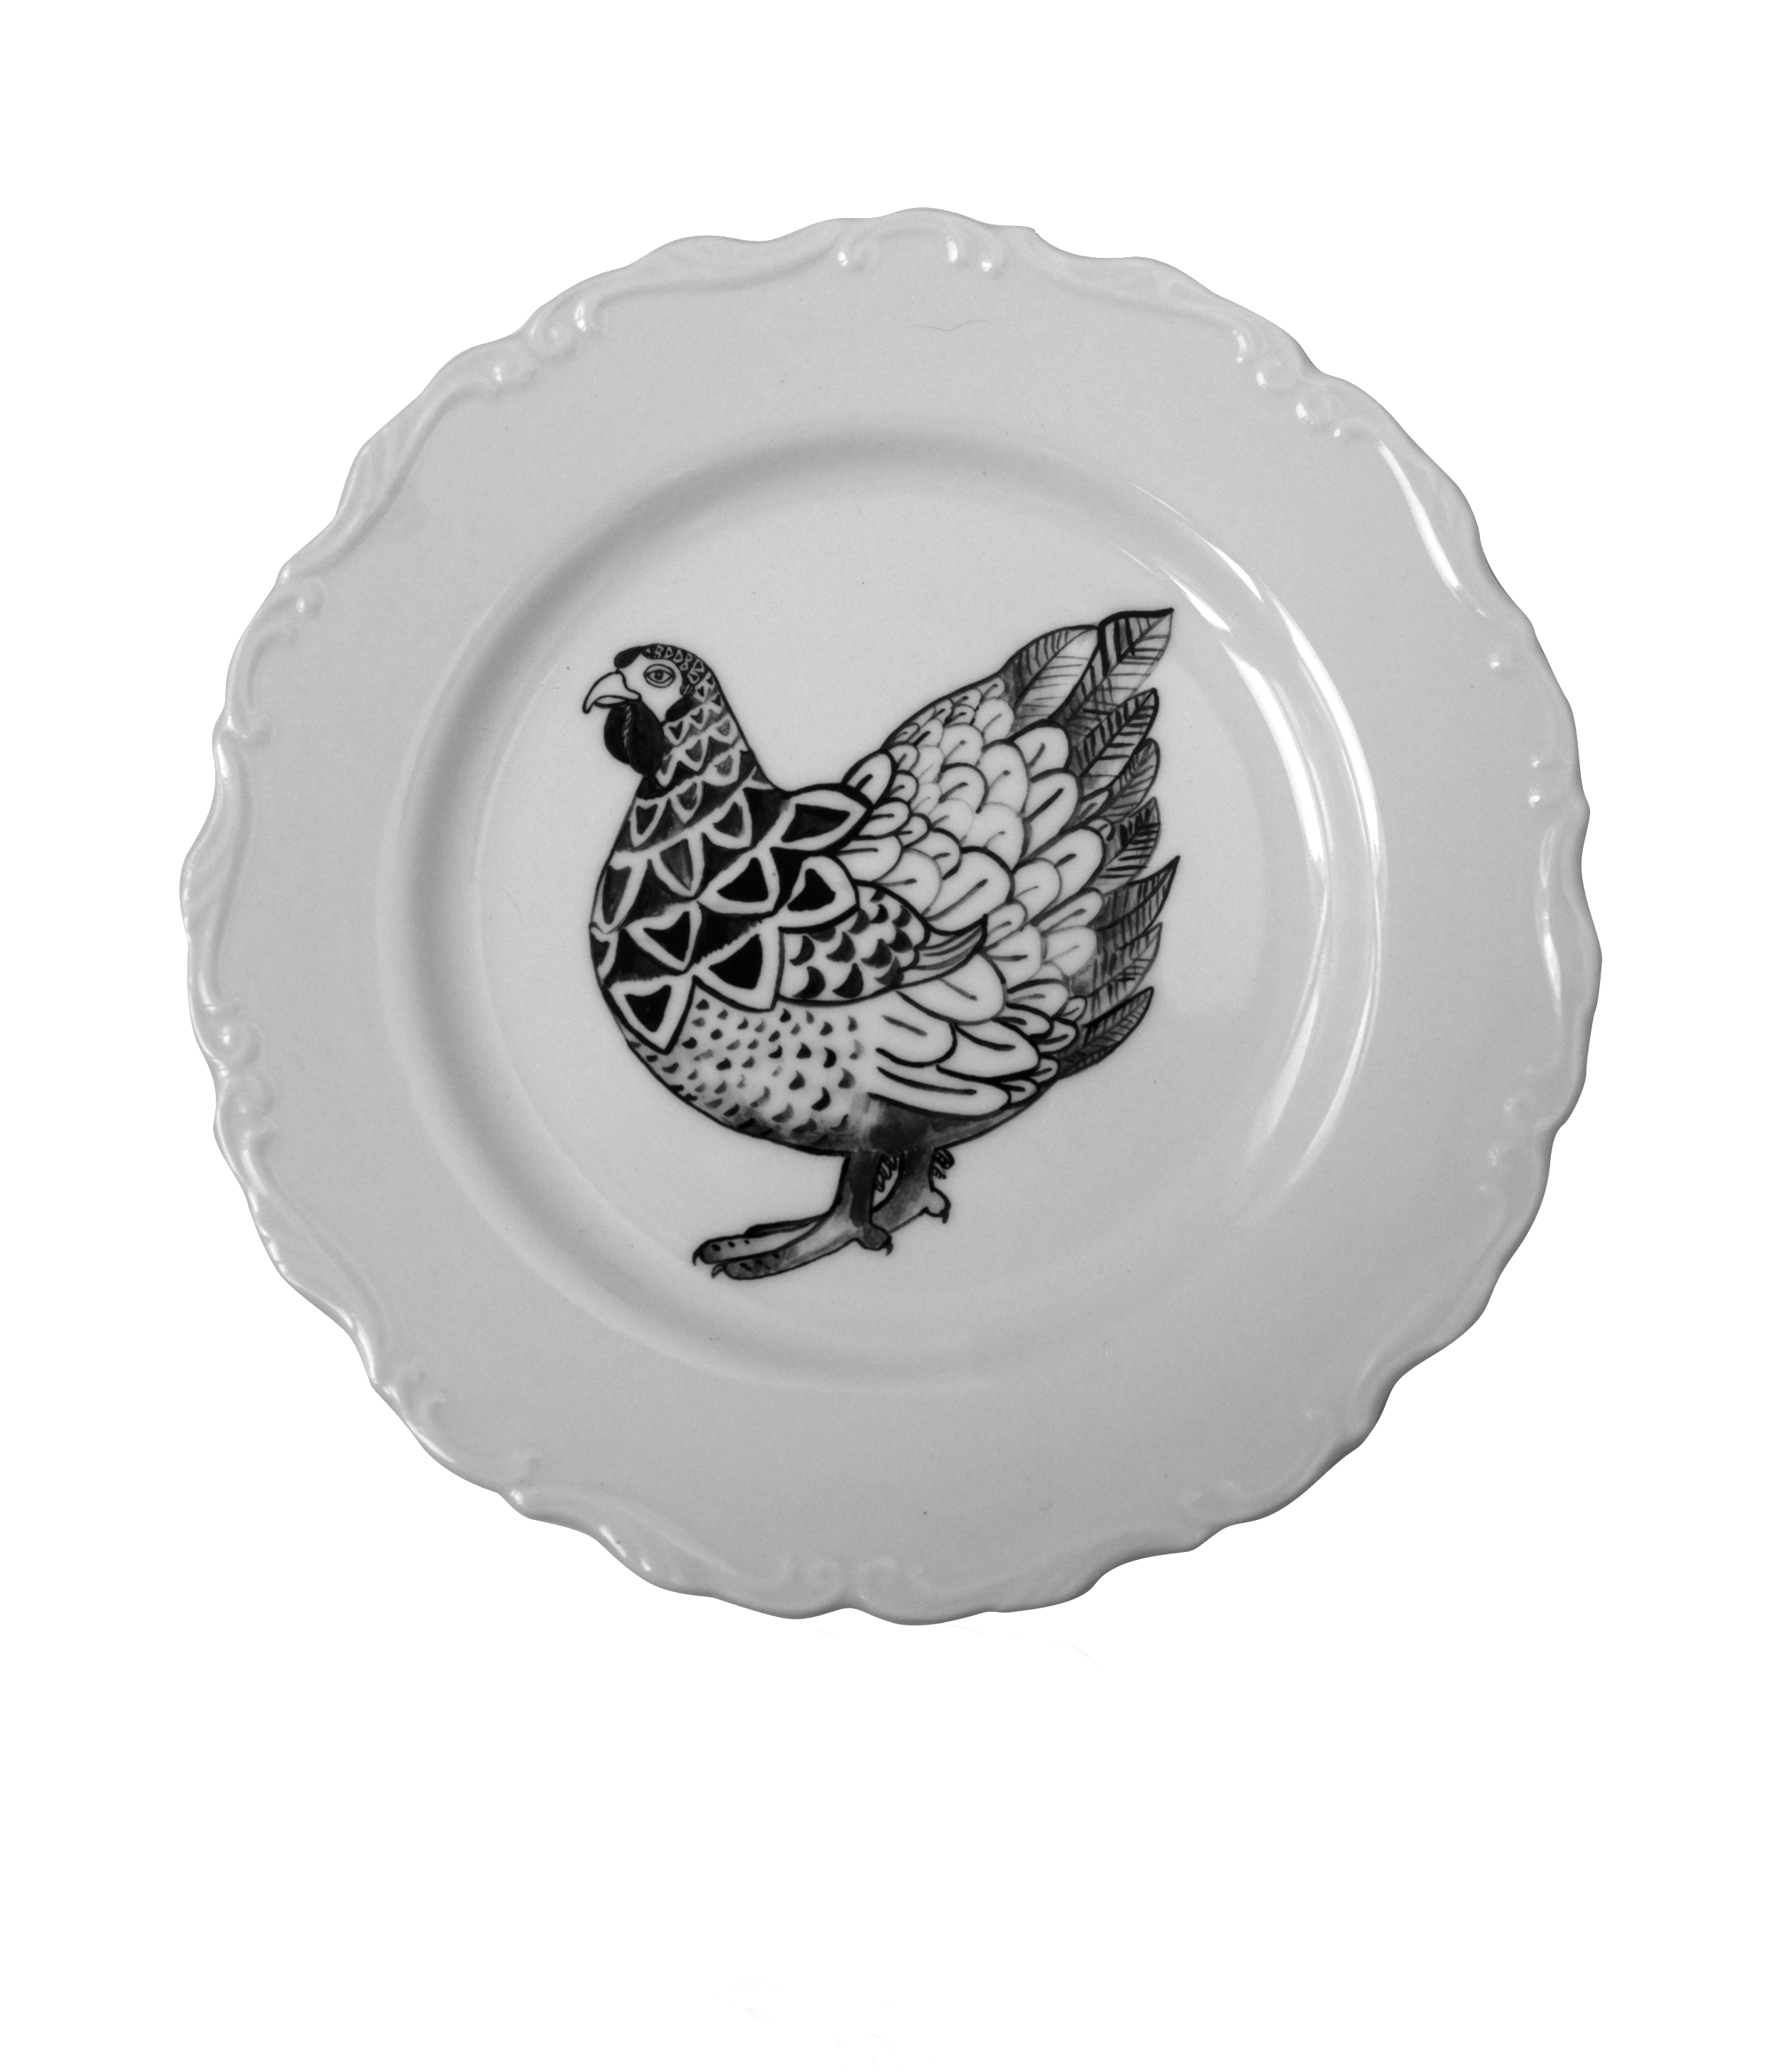 Royal-chicken-plate.png